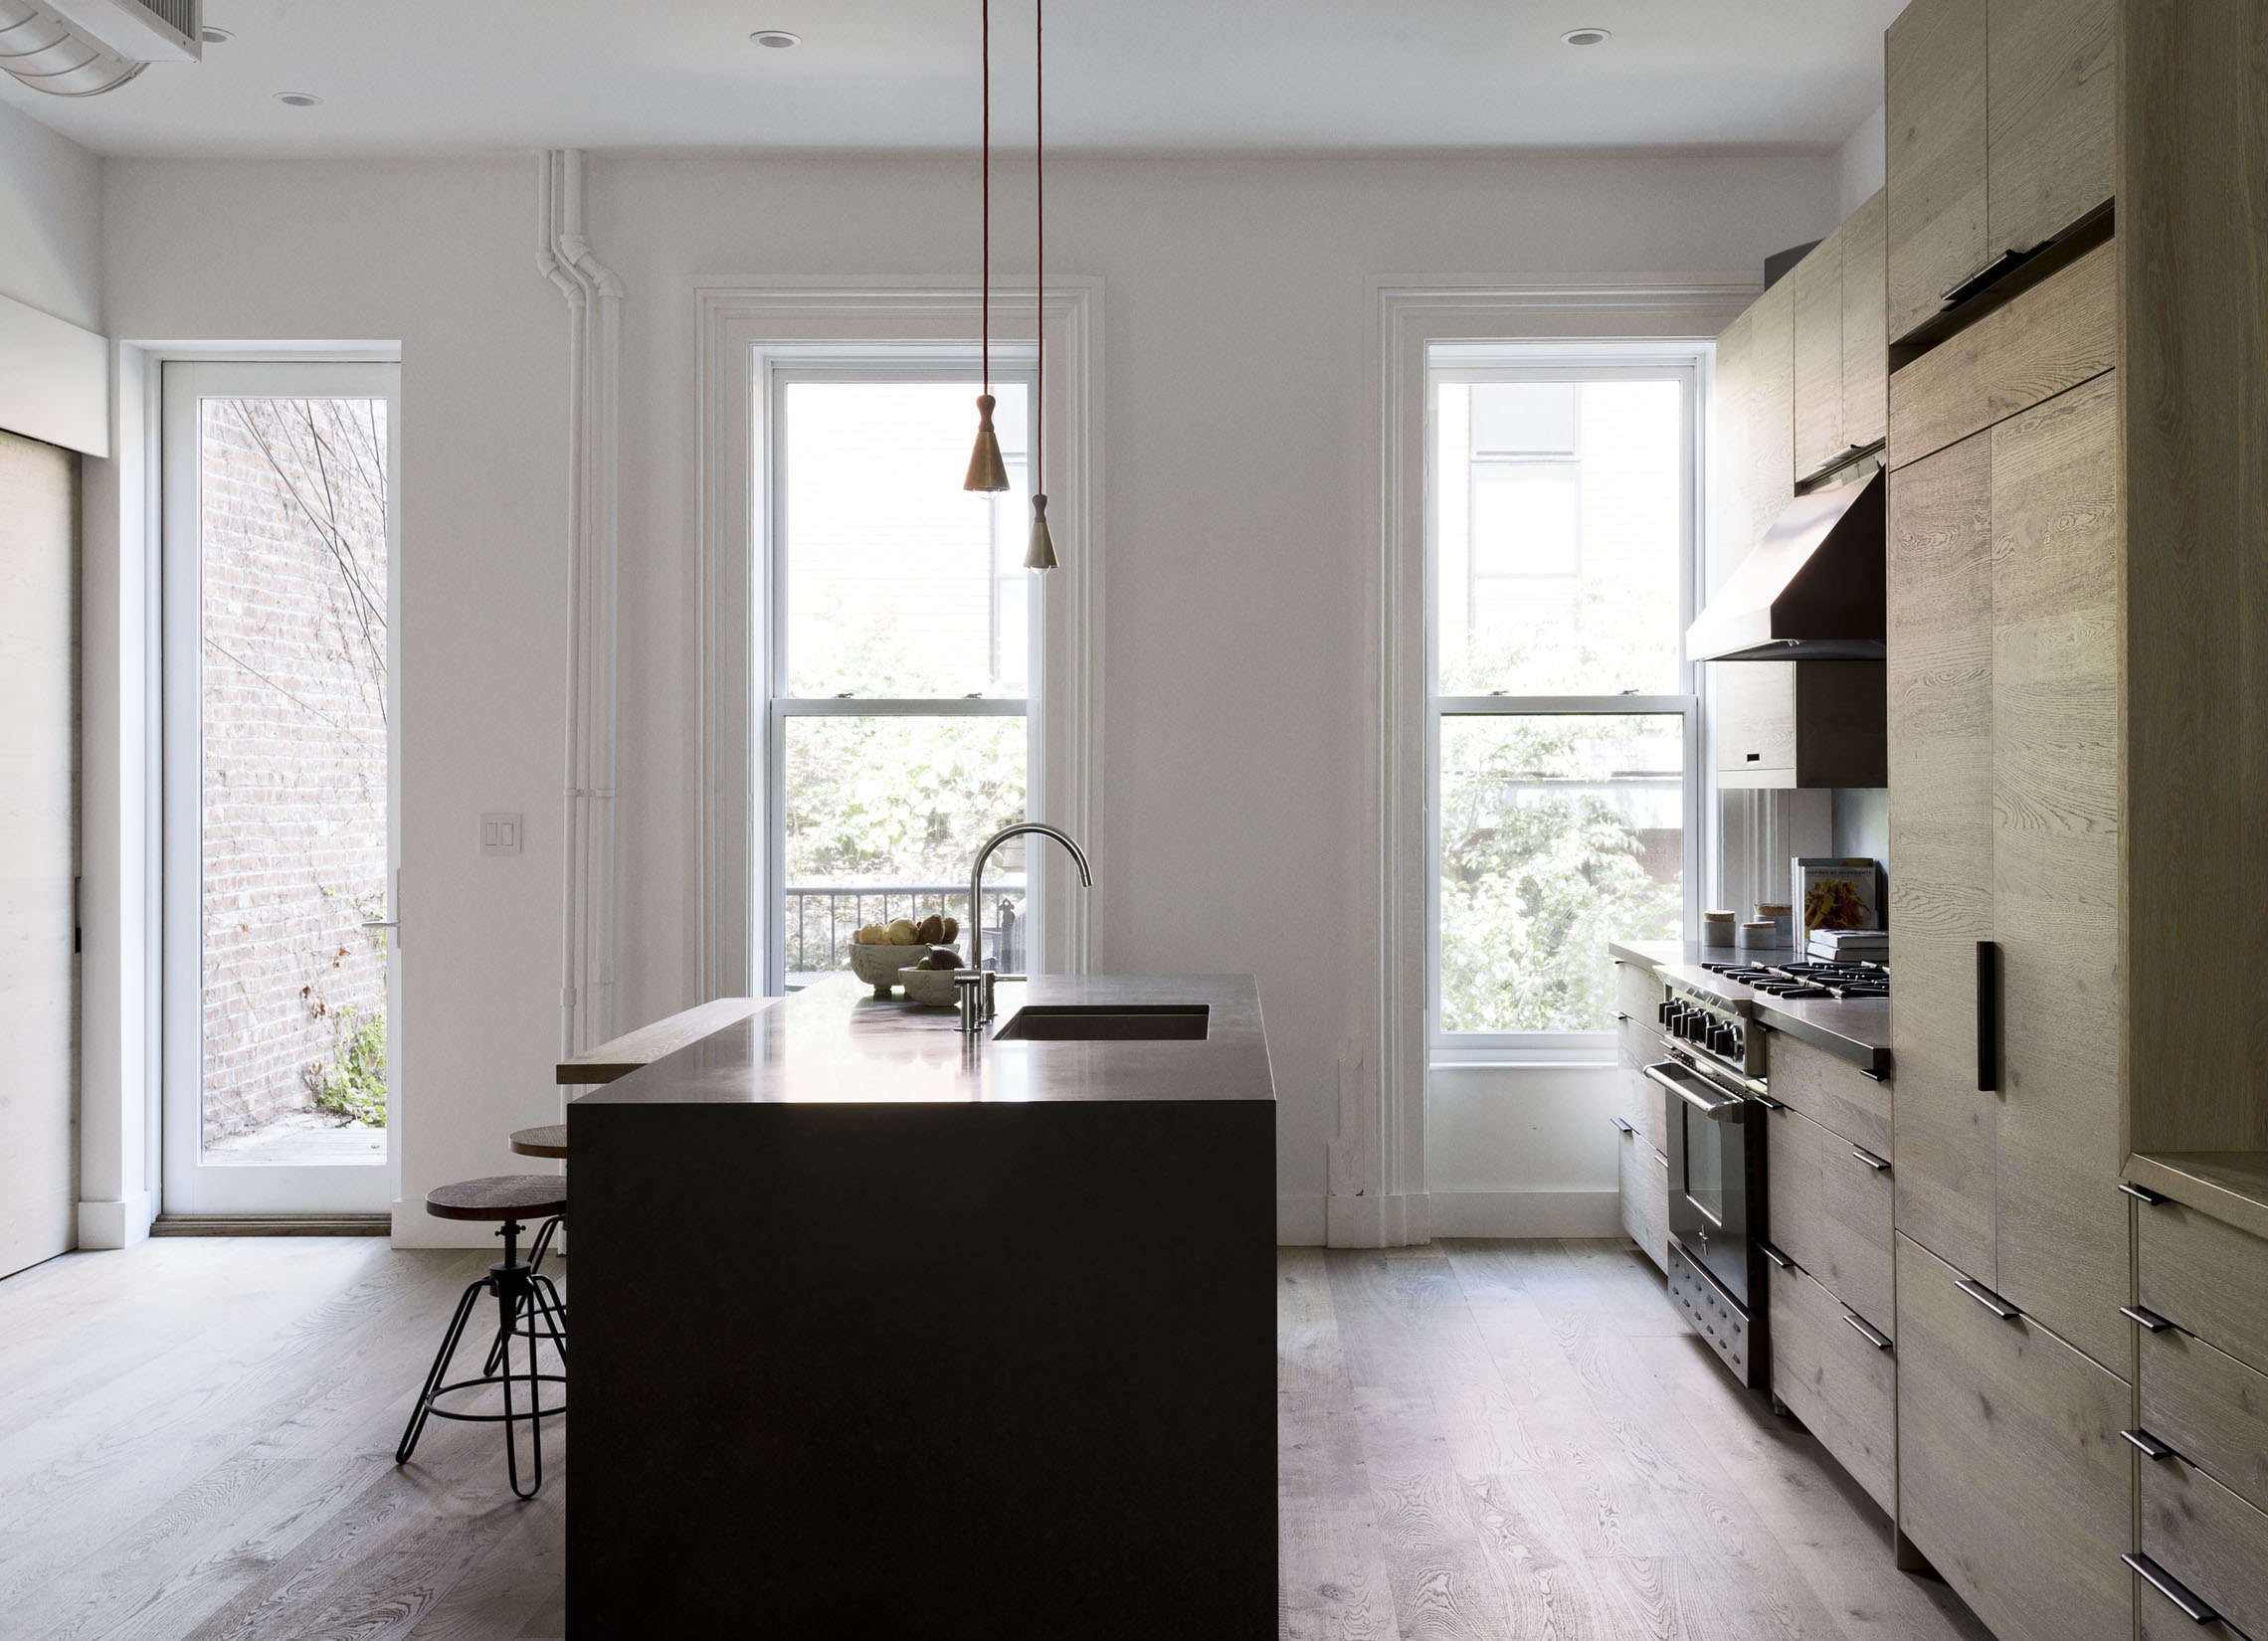 Brooklyn kitchen design with custom wood cabinets and quartzite island by Workstead, Matthew Williams photo | Remodelista